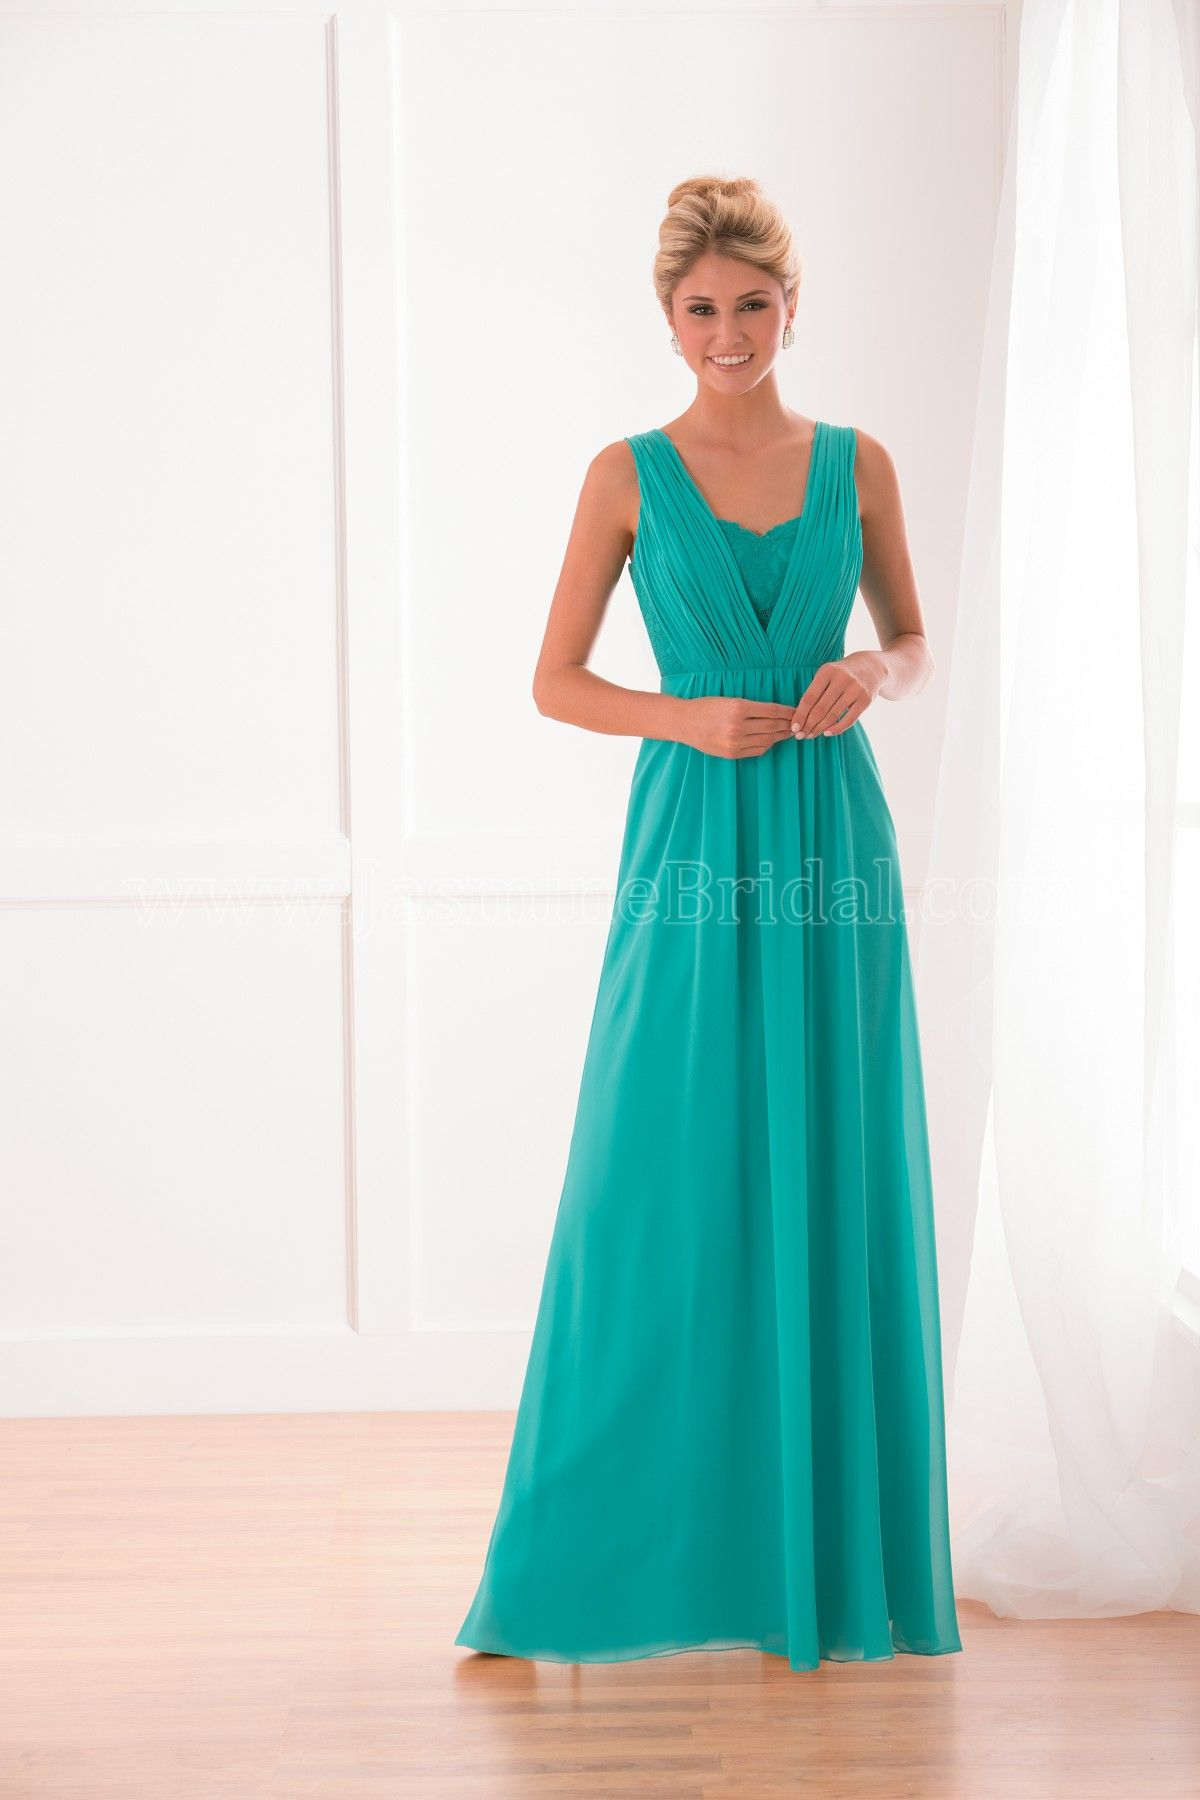 B173021 by B2: This Chiffon bridesmaids gown features a v-neckline ...